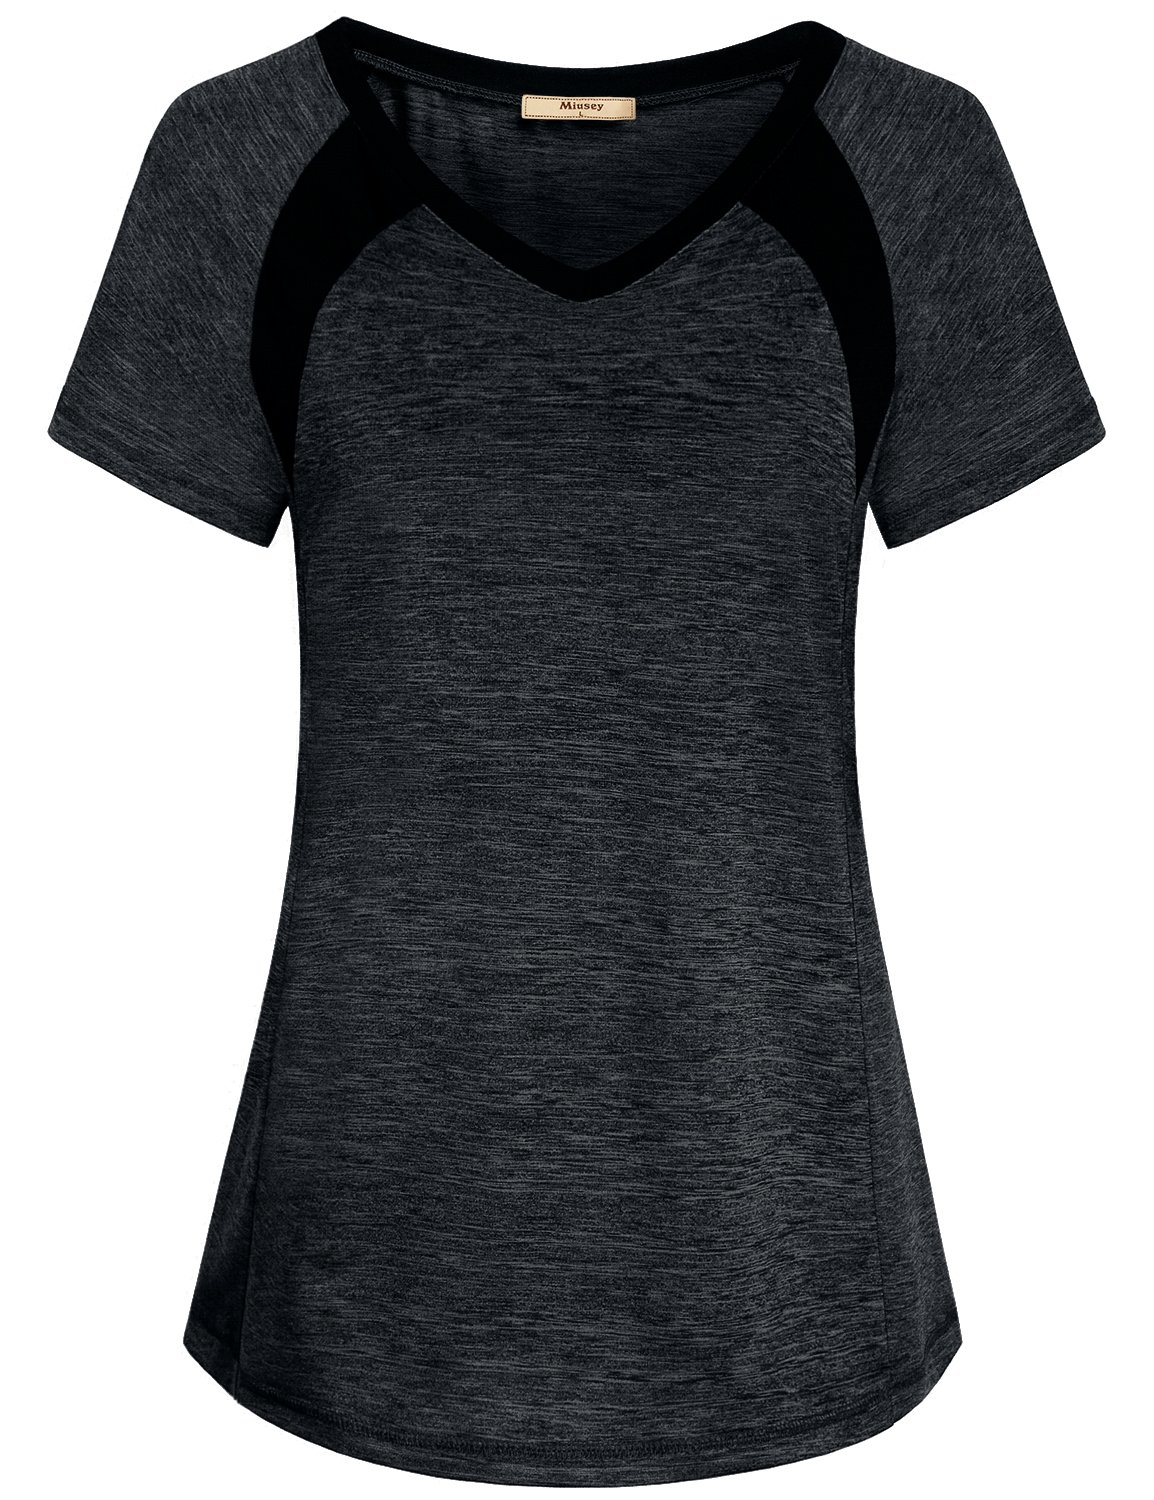 Miusey Sports Shirts for Women, Ladies Gym Workout Short Sleeve V Neck Tee Activewear Raglan Top Jr Clothes Color Block Plain Outwear Classic Heathered Black M